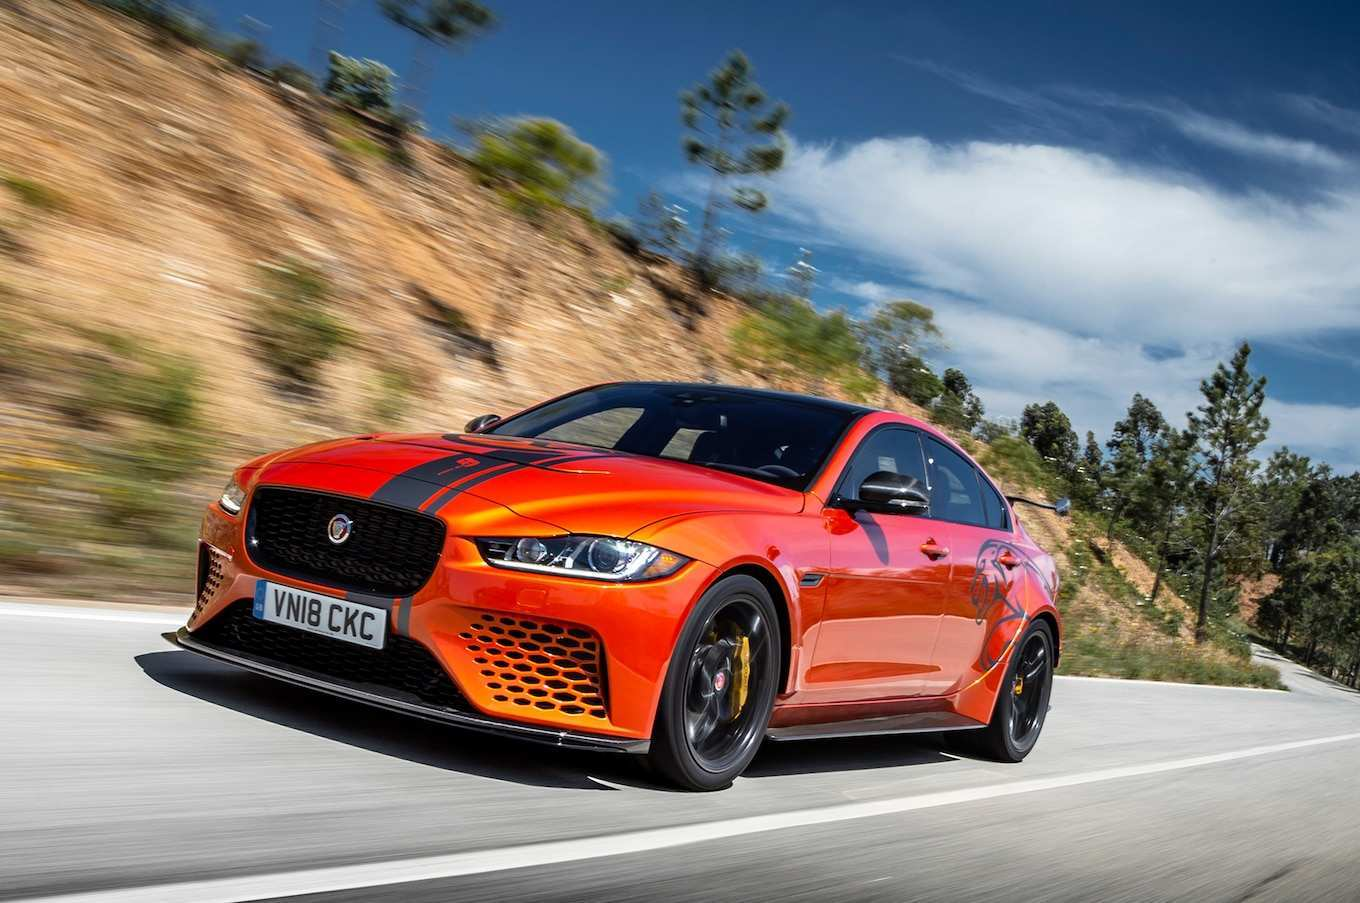 66 All New 2019 Jaguar Xe Svr New Review